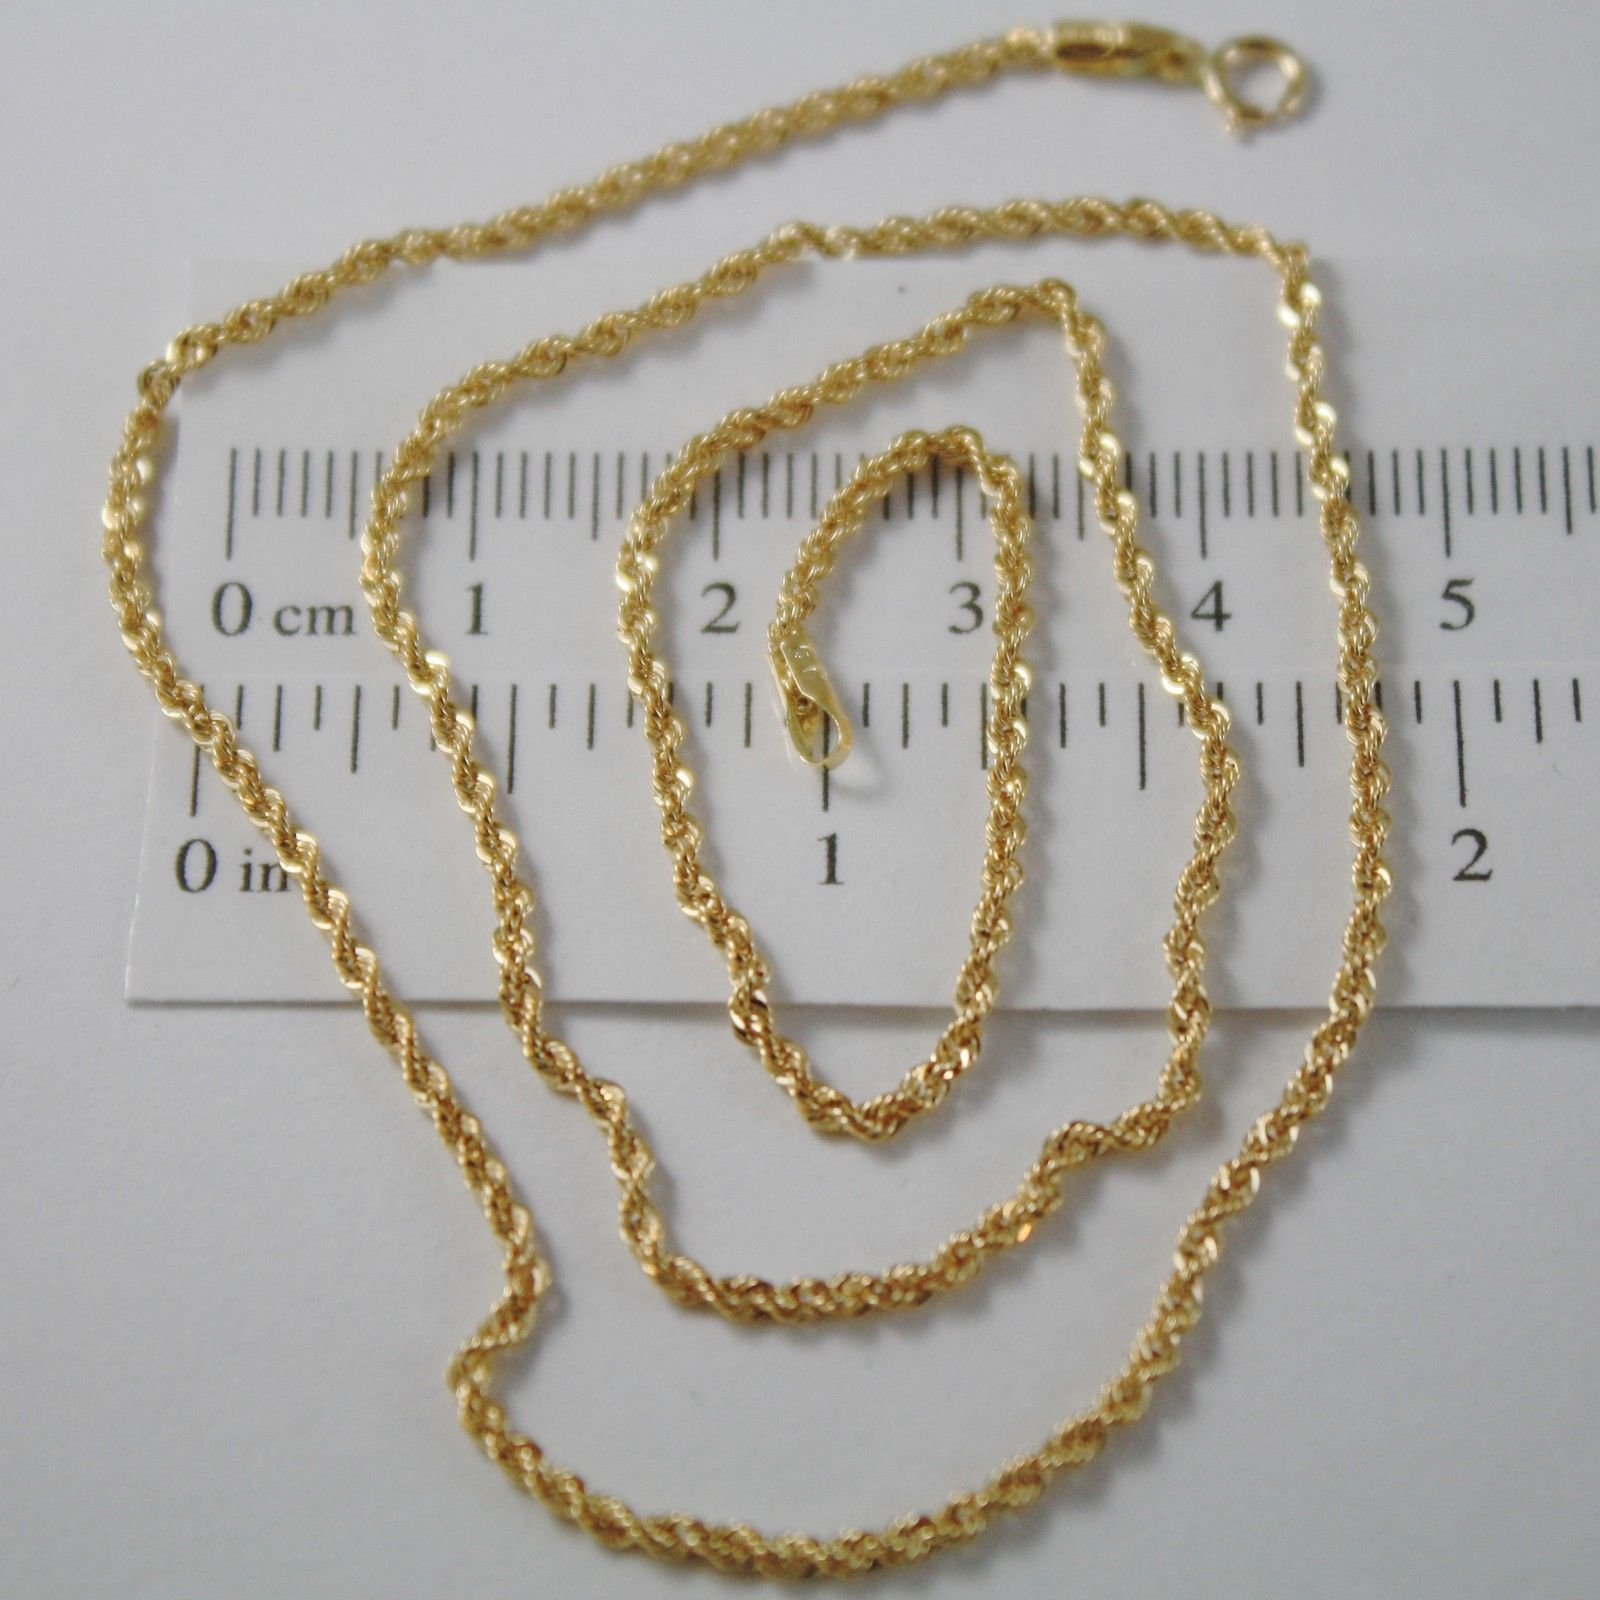 CADENA EN ORO AMARILLO 18K, CUERDA 2 MM, COLLAR, 40 CM, MADE IN ITALY, ITALIA